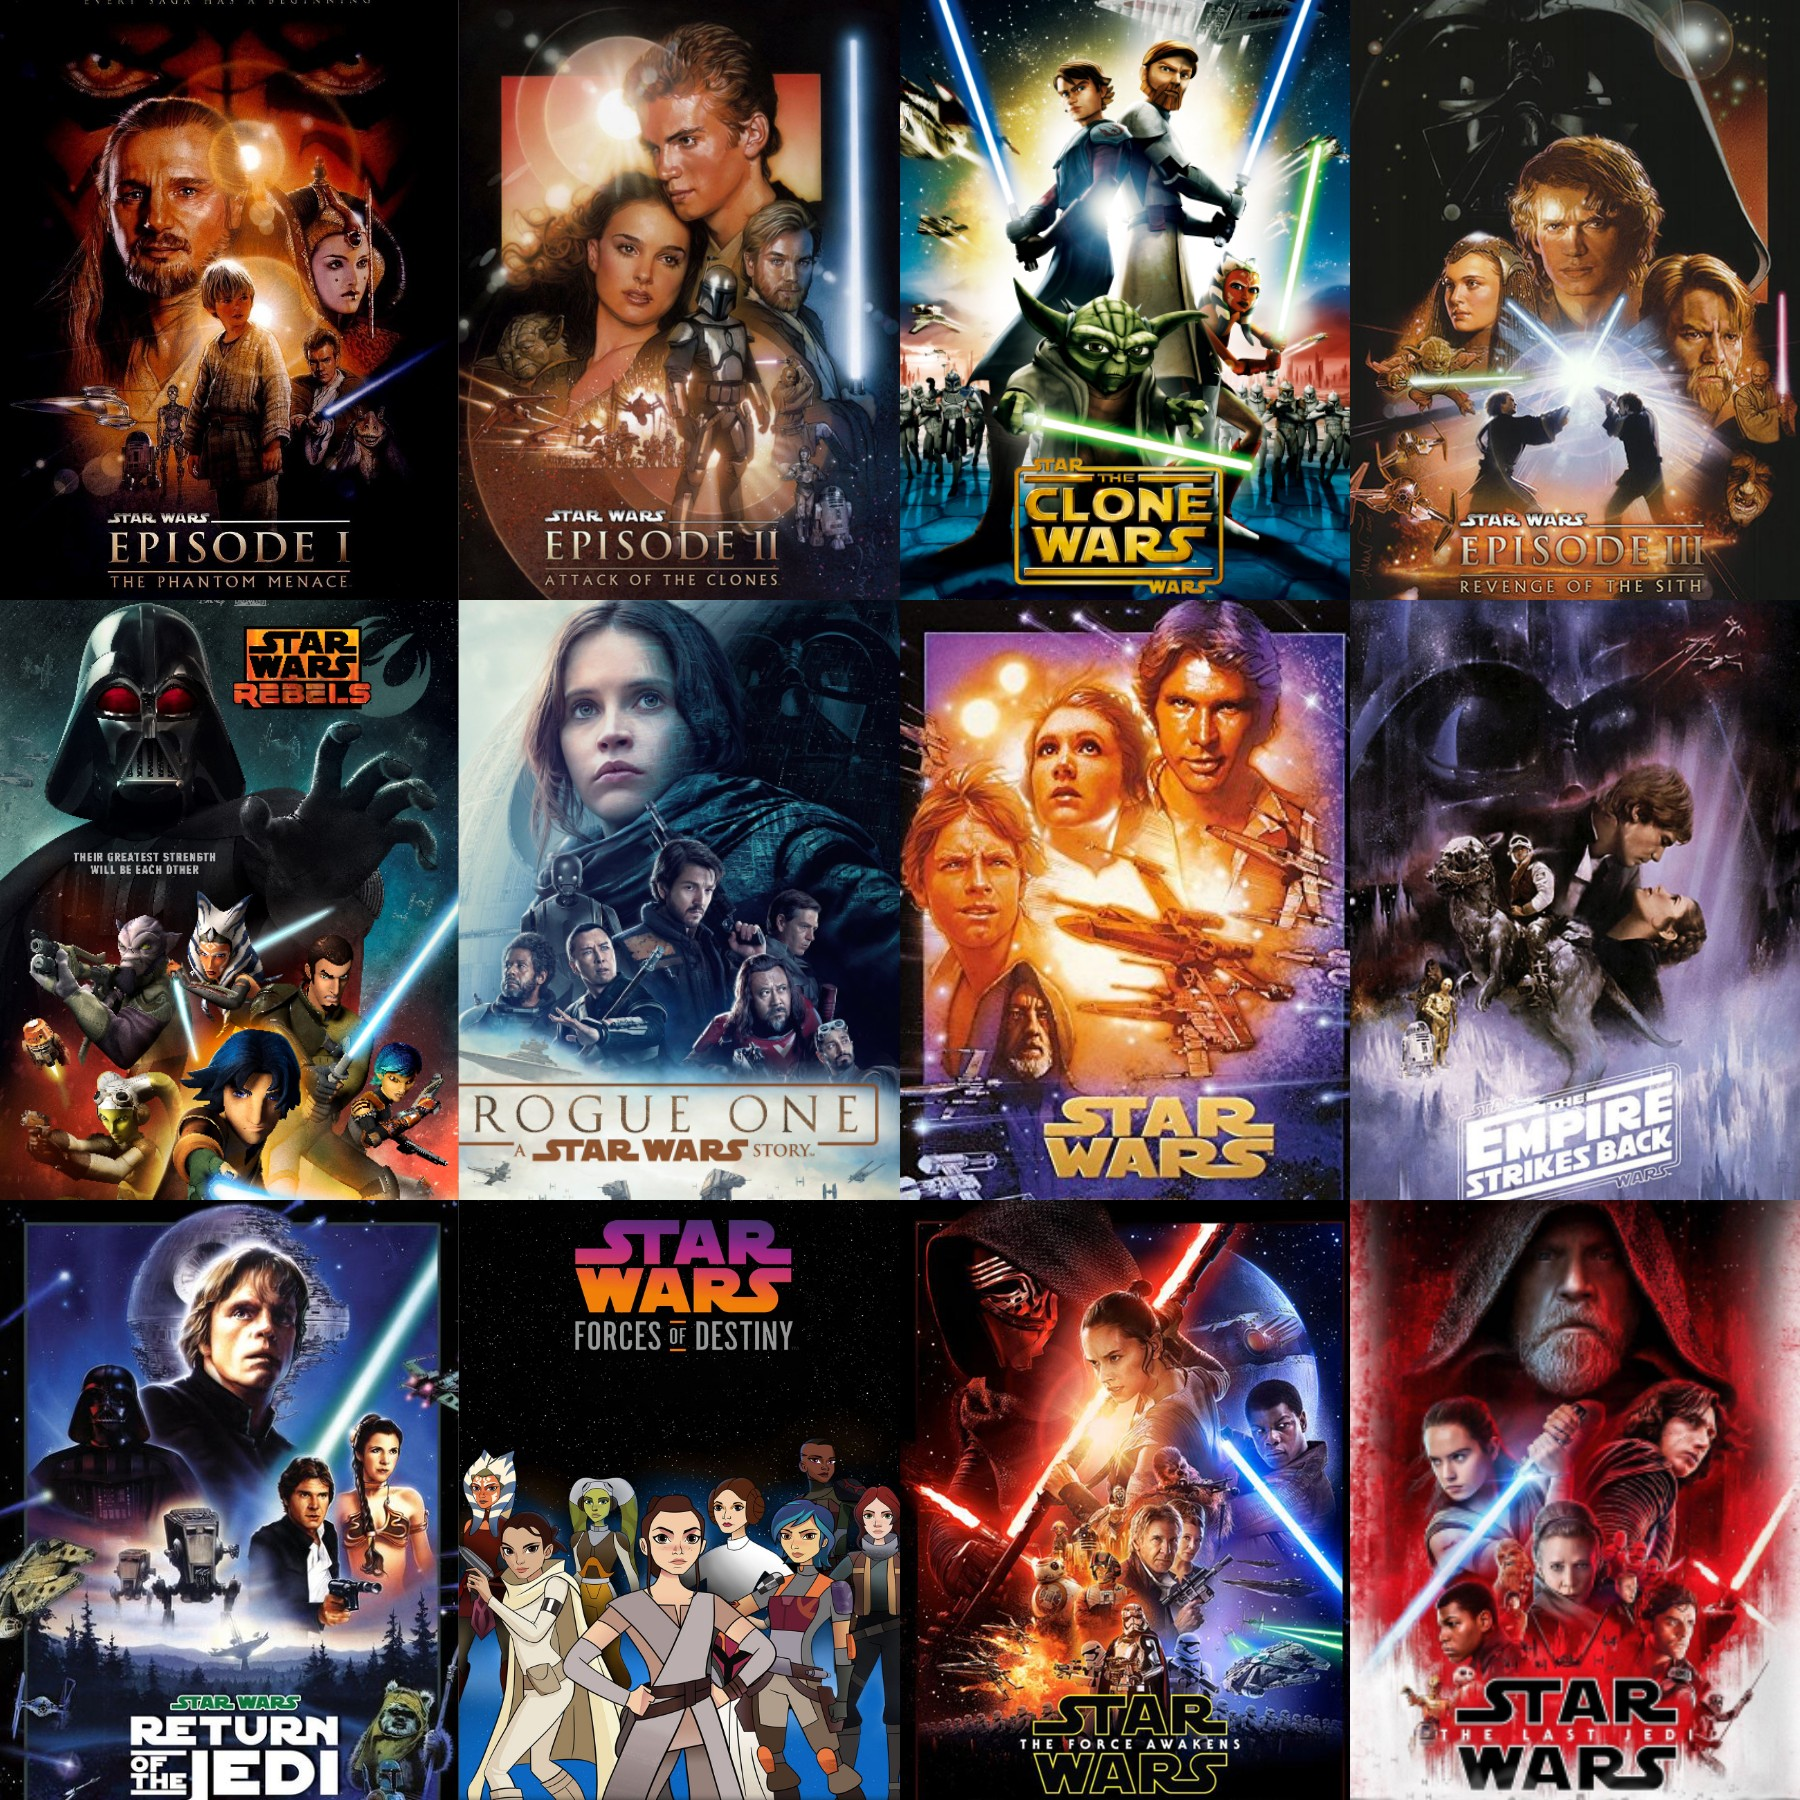 Every Star Wars film has the wrong name. Here's how to swap the names so it makes more sense.